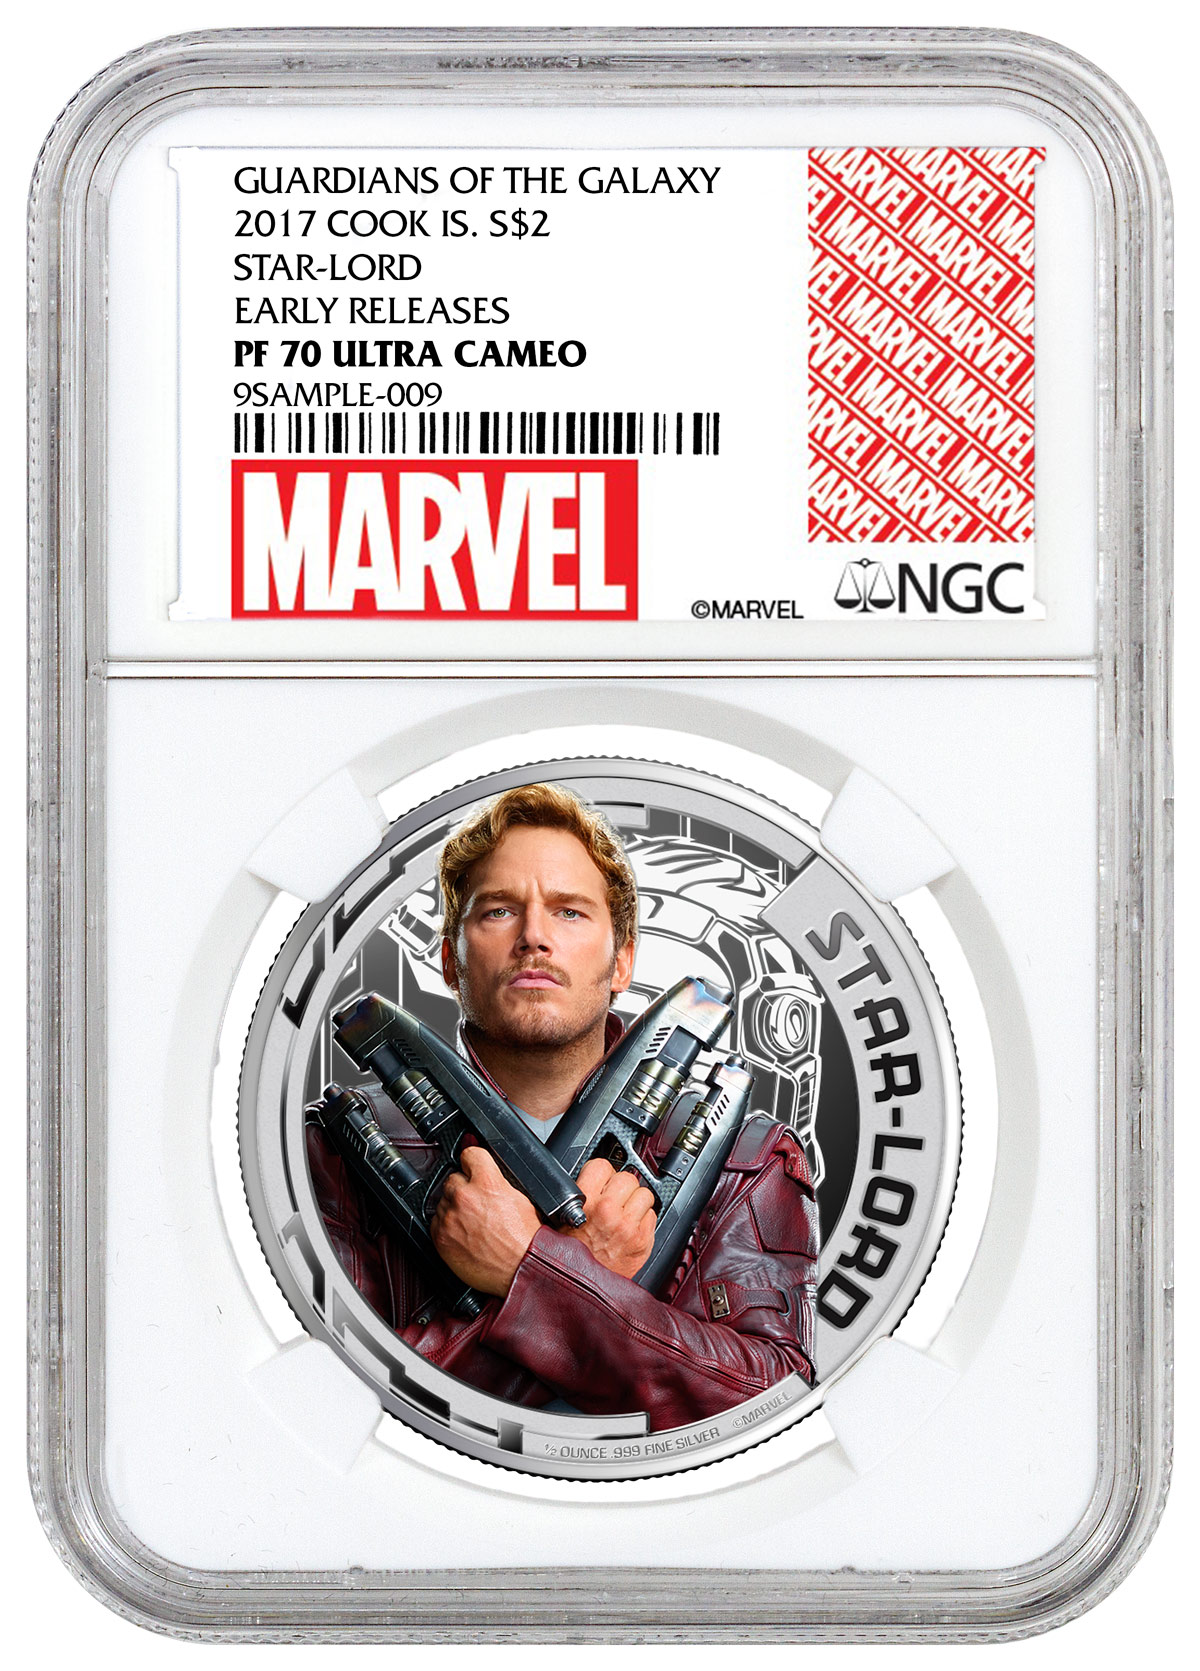 2017 Cook Islands Marvel Guardians of the Galaxy - Star Lord 1/2 oz Silver Colorized Proof $2 Coin NGC PF70 UC ER (Exclusive Marvel Label)